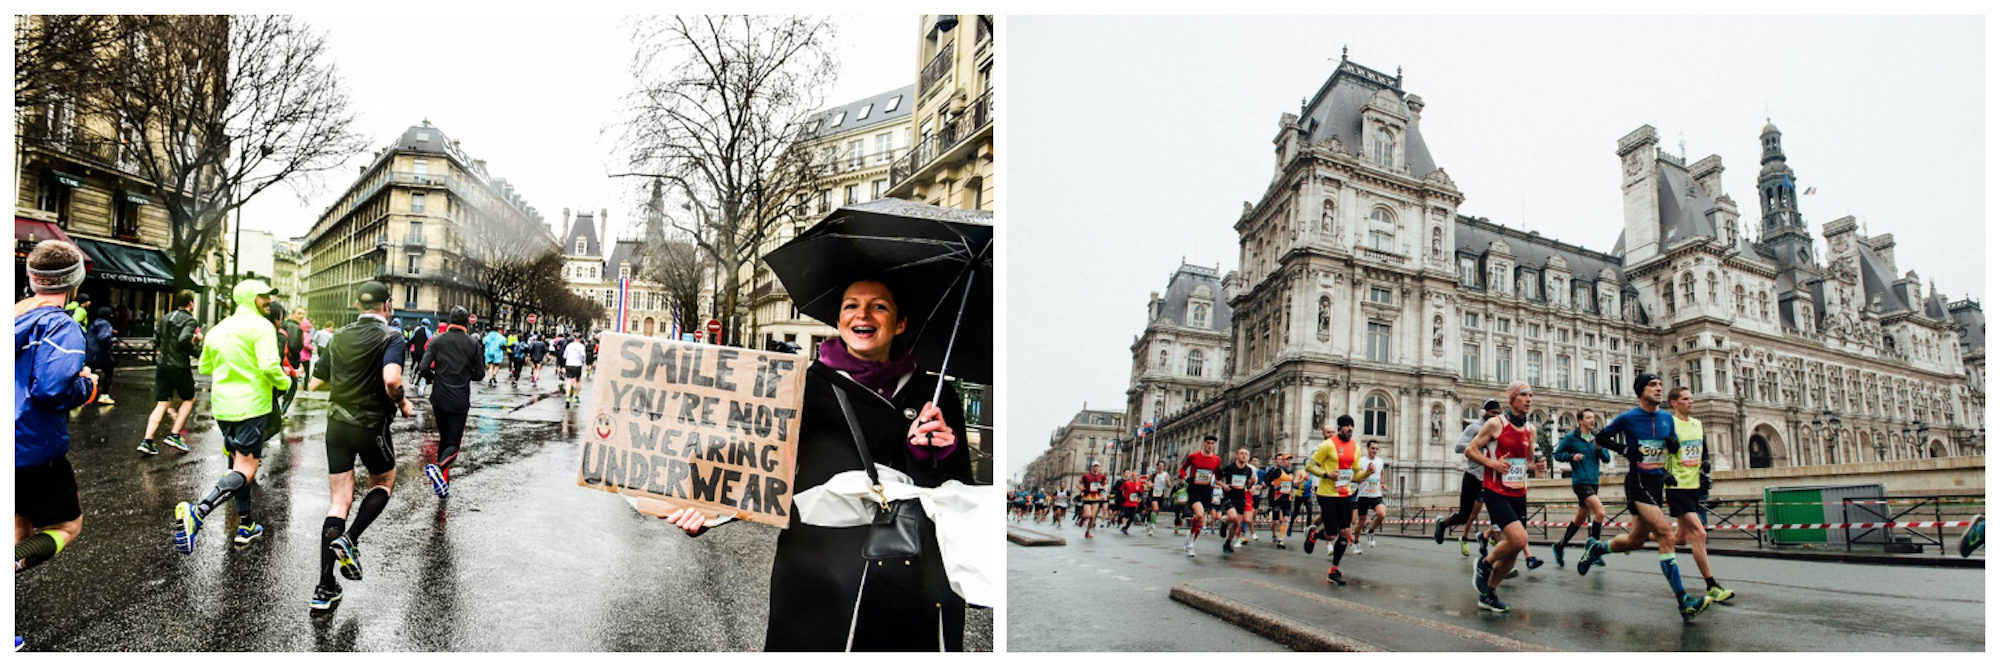 The half-marathon takes place in Paris every March, and people come to support the runners (left). Marathon runners pass the Paris Town Hall in the rain (right).